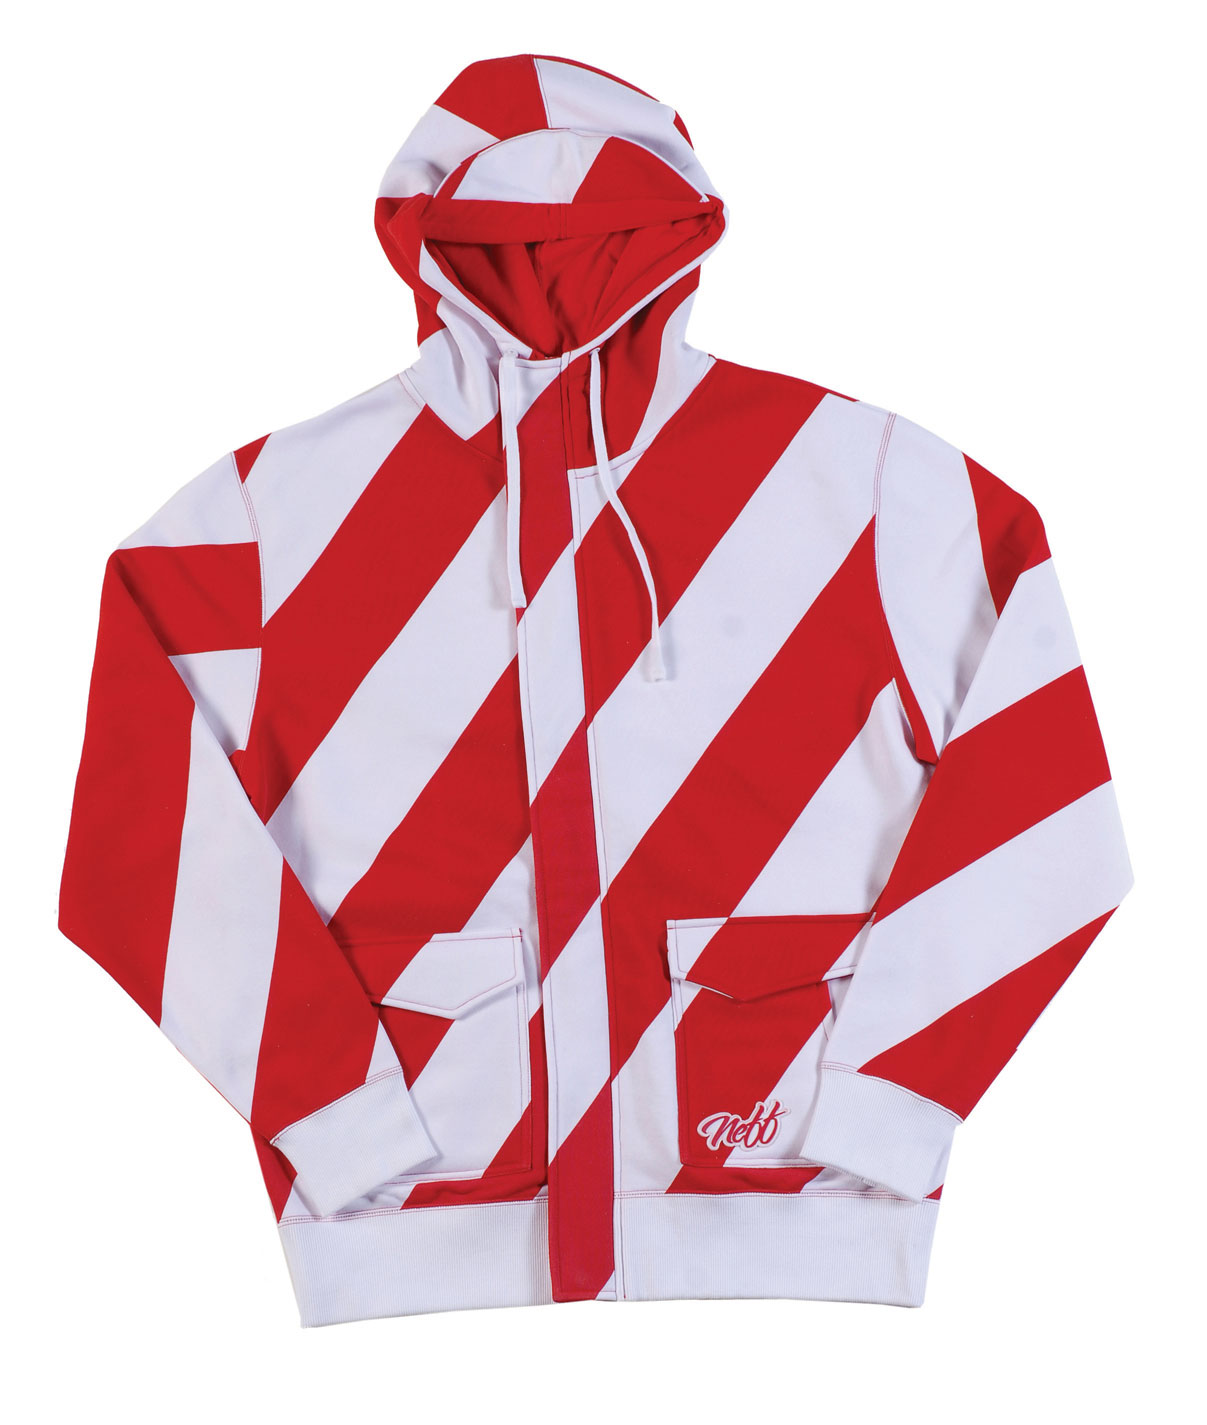 Skateboard If you hanging out in the Candy Cane Forest or on top of Gum Drop Mountain this hood willis ready to shred. With added storm flaps and this water resistant hoodie it top notch. If you don't have a bonded fleece hoodie yet, you have been missing out on some of best hoodie technology out there. Get one and stay dry! Water resistant Loose fit Full zip Candy pockets - $44.95